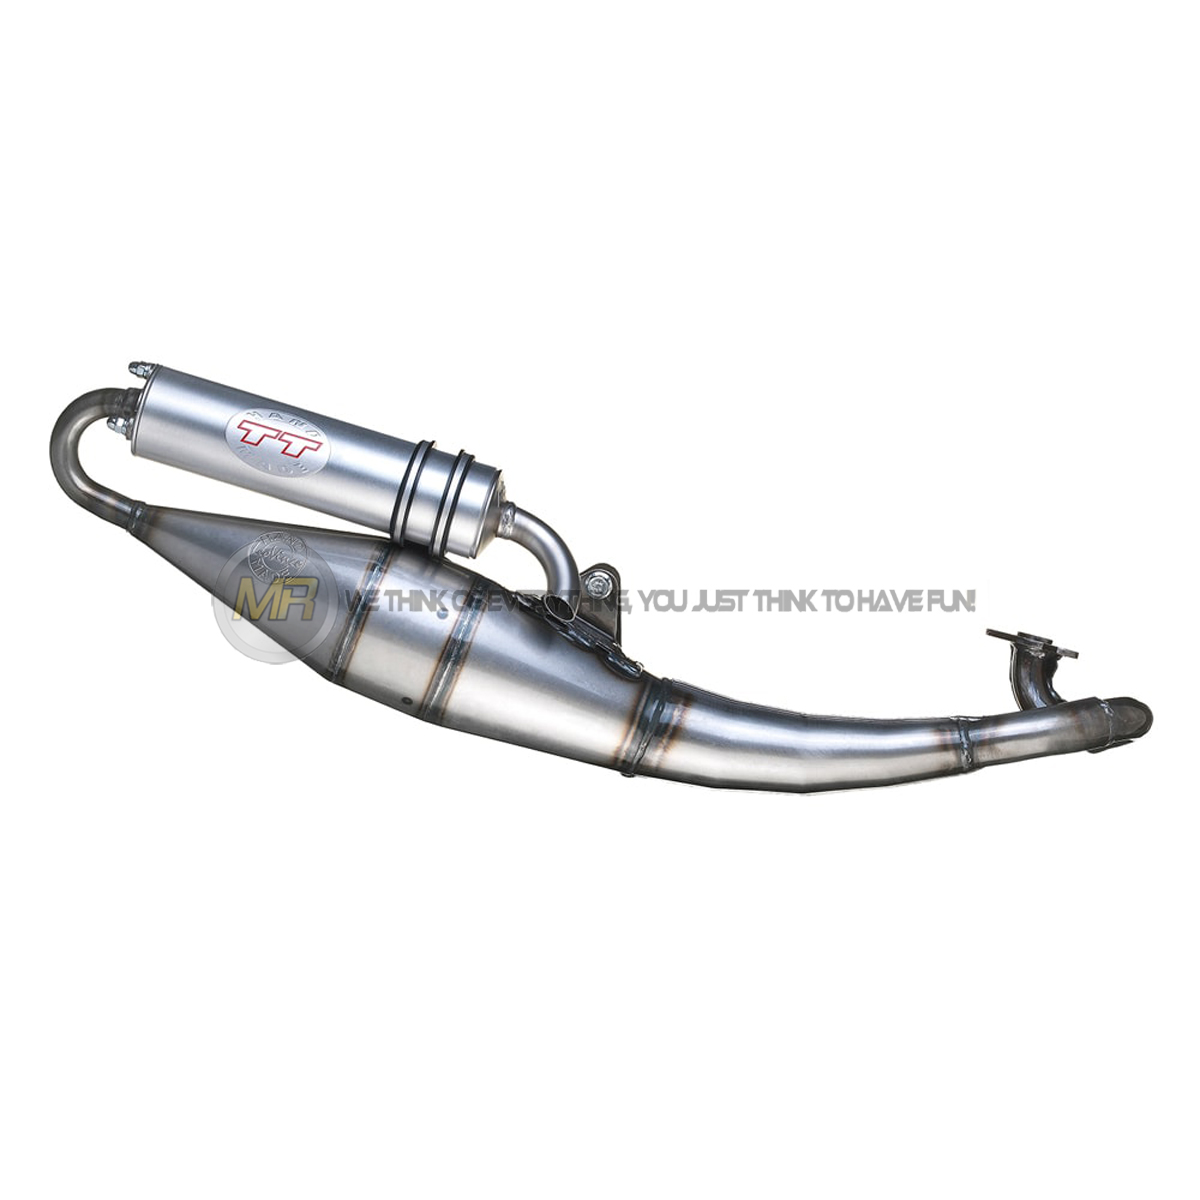 GILERA RUNNER 50 SP 2006 06 FULL SYSTEM EXHAUST HEADER